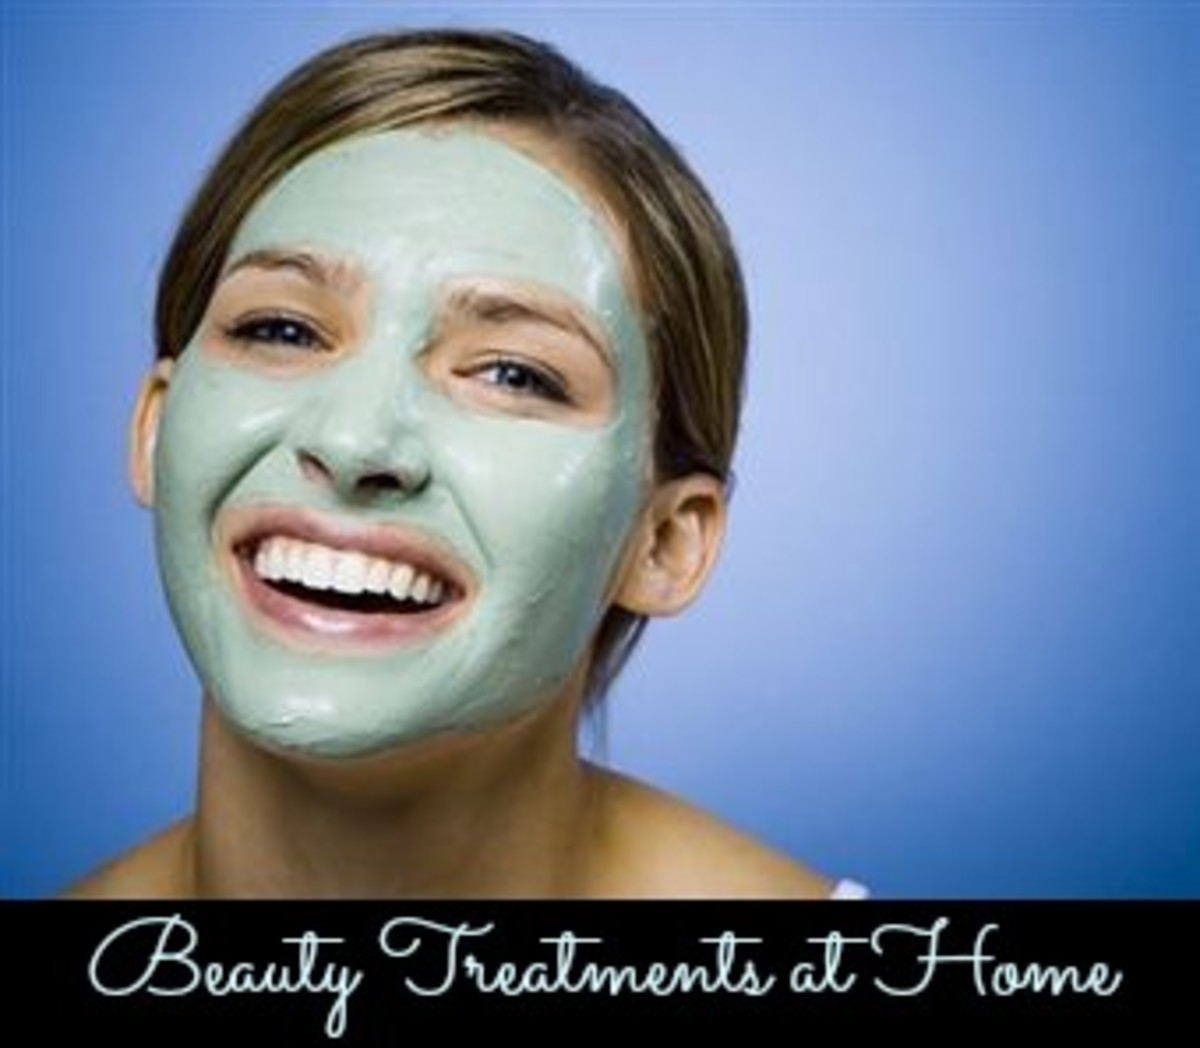 Beauty Treatments, Beauty Treatments at home